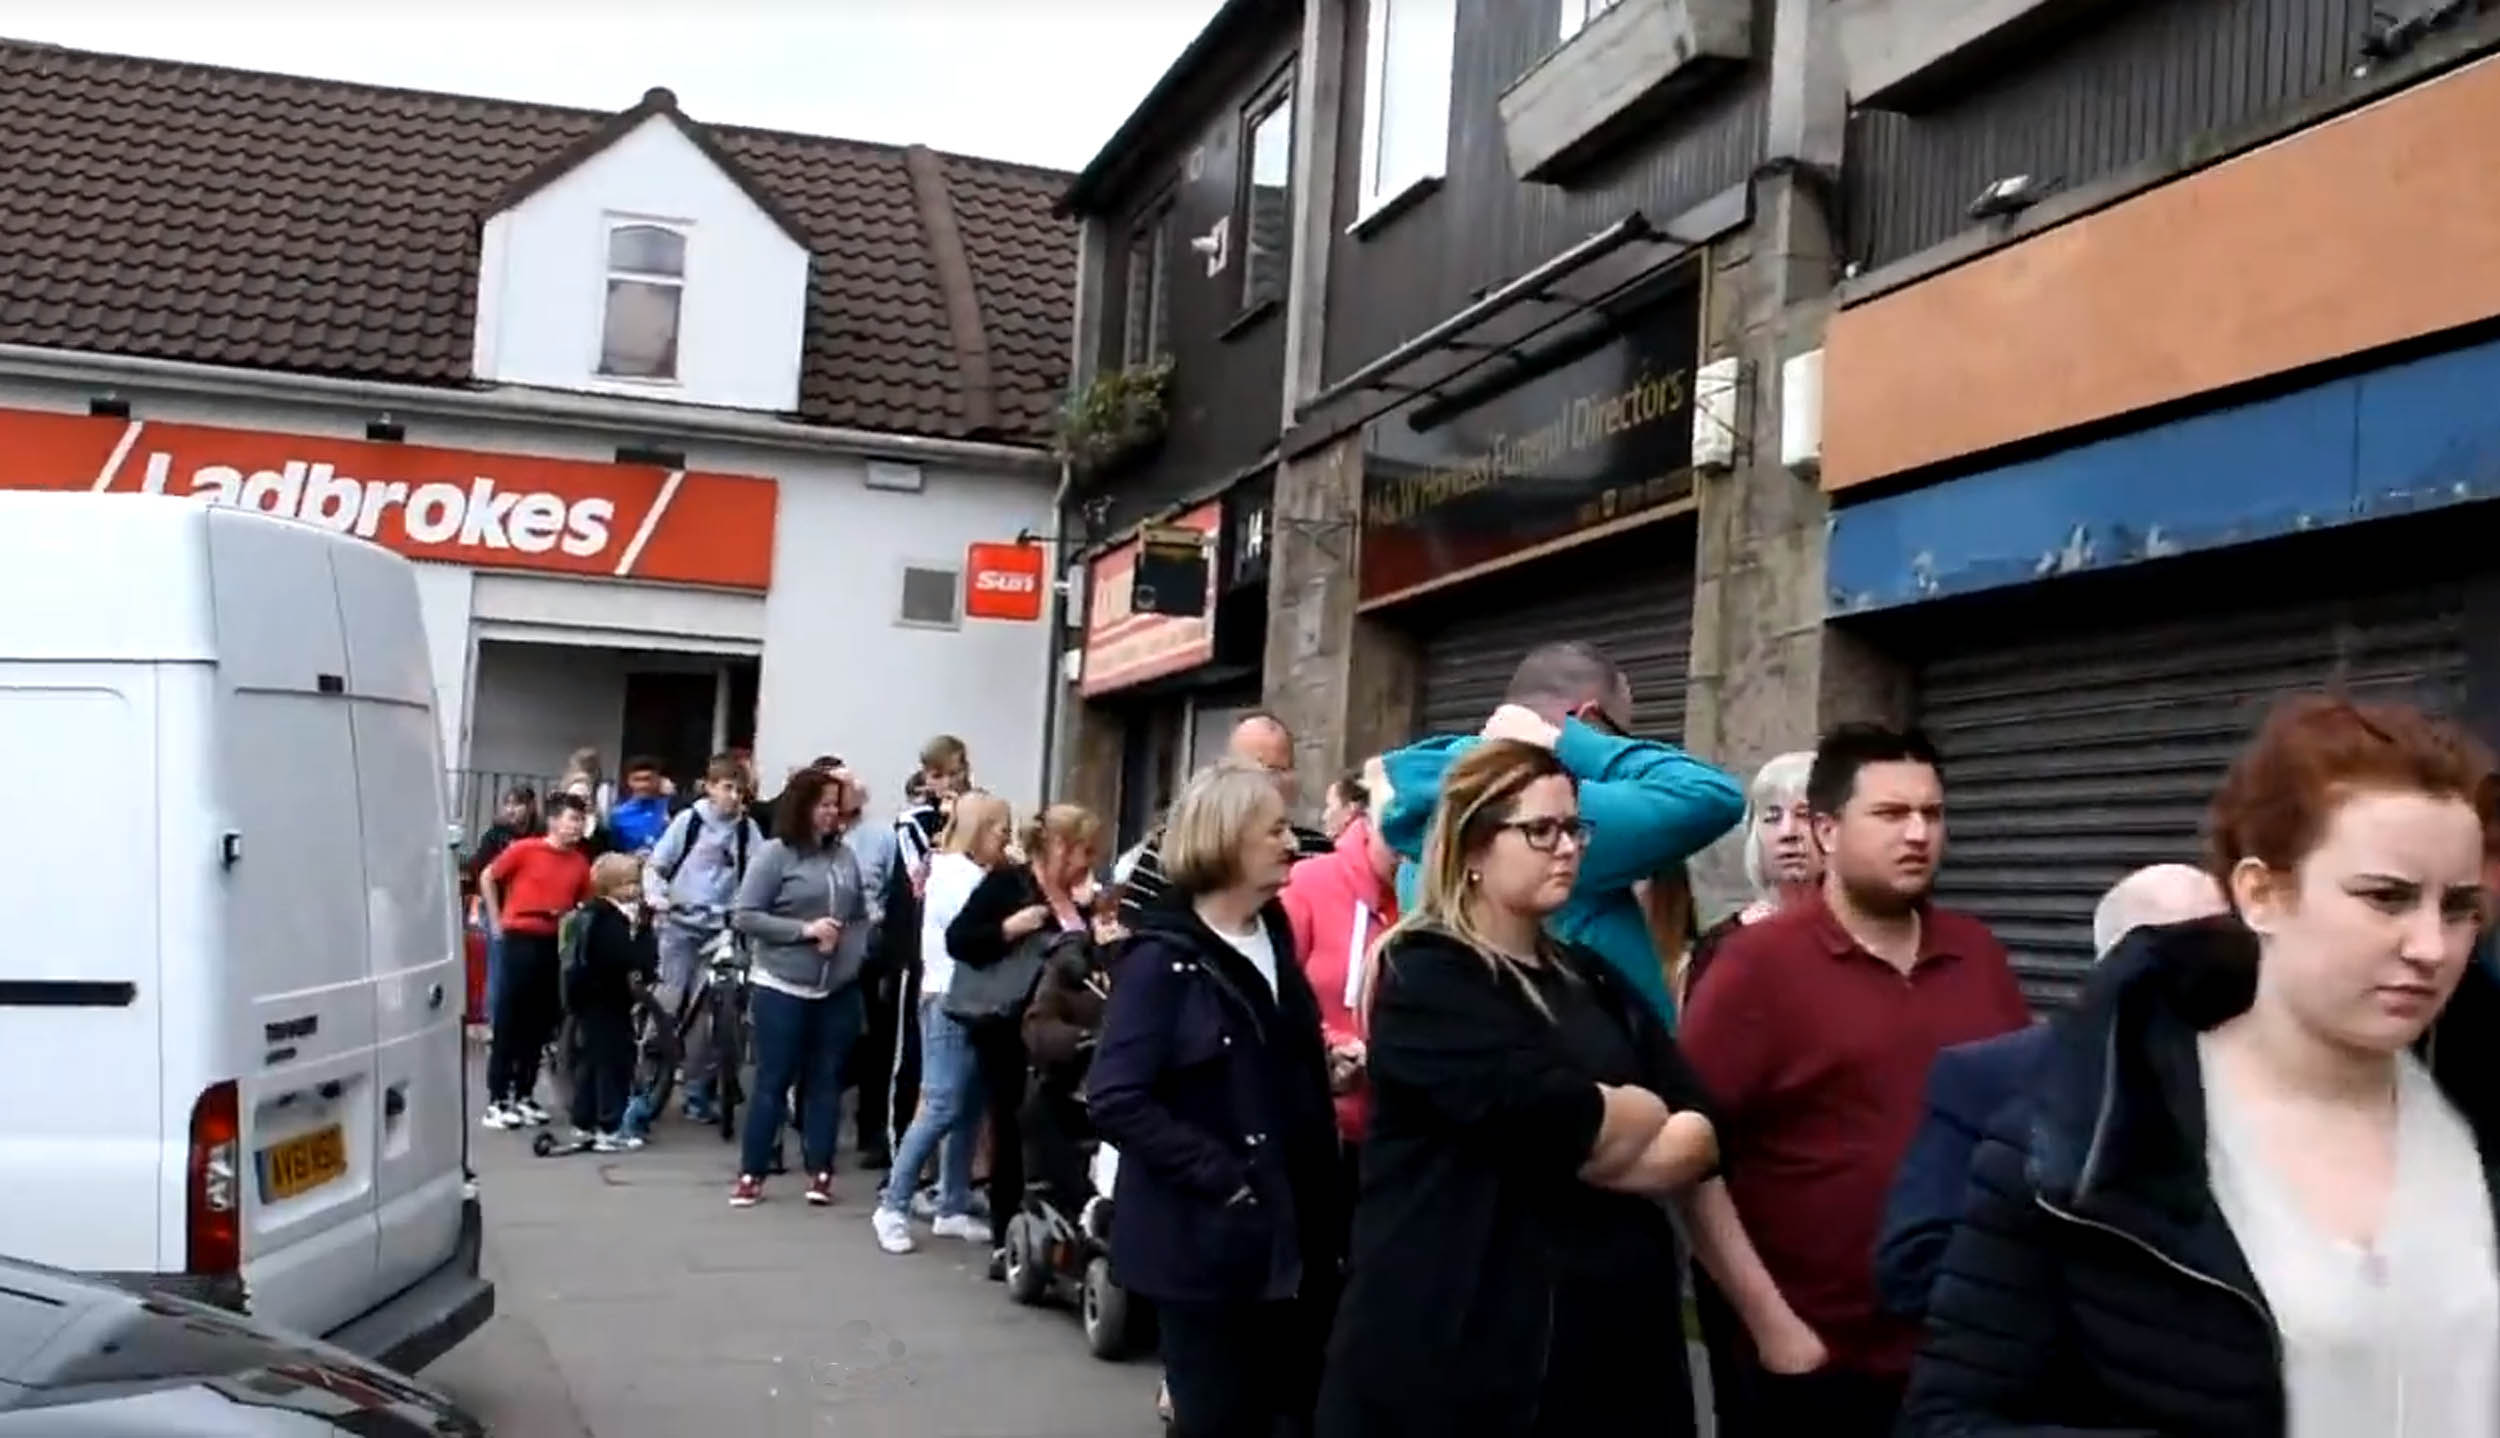 The queue down the street outside the chippy